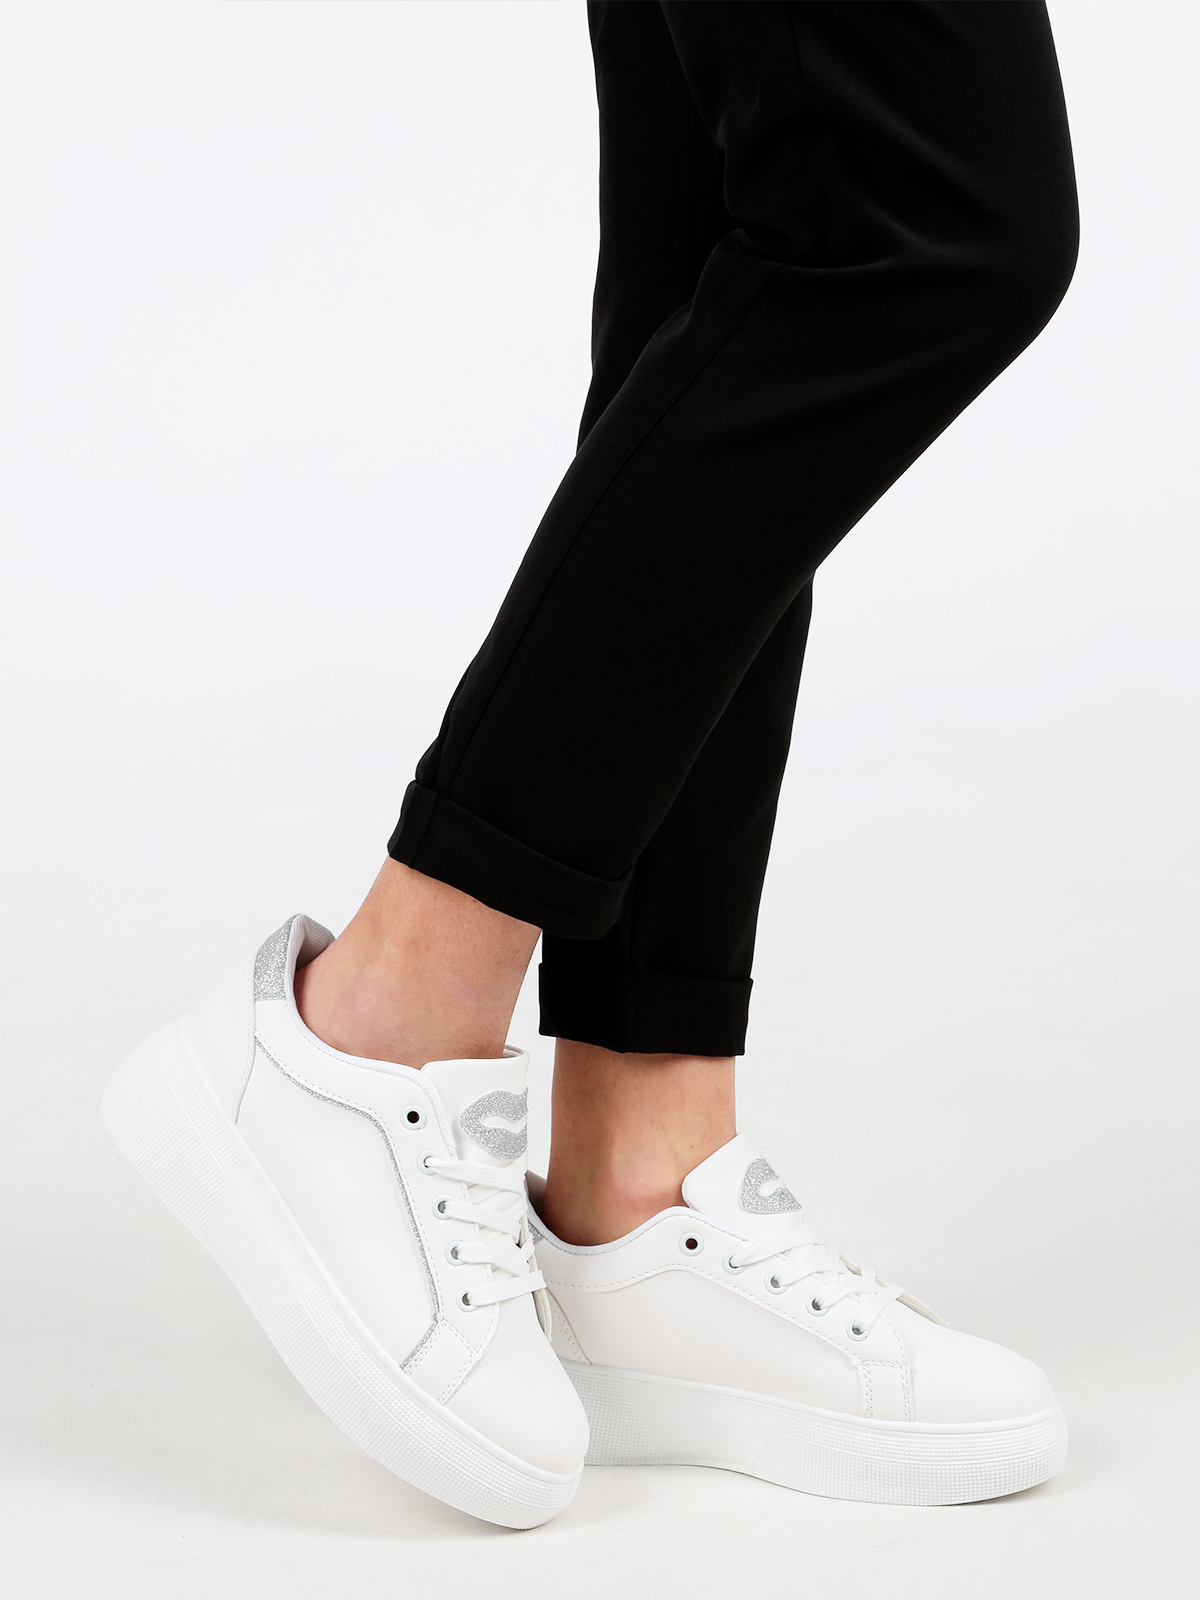 Sneakers Soled High & Glitter